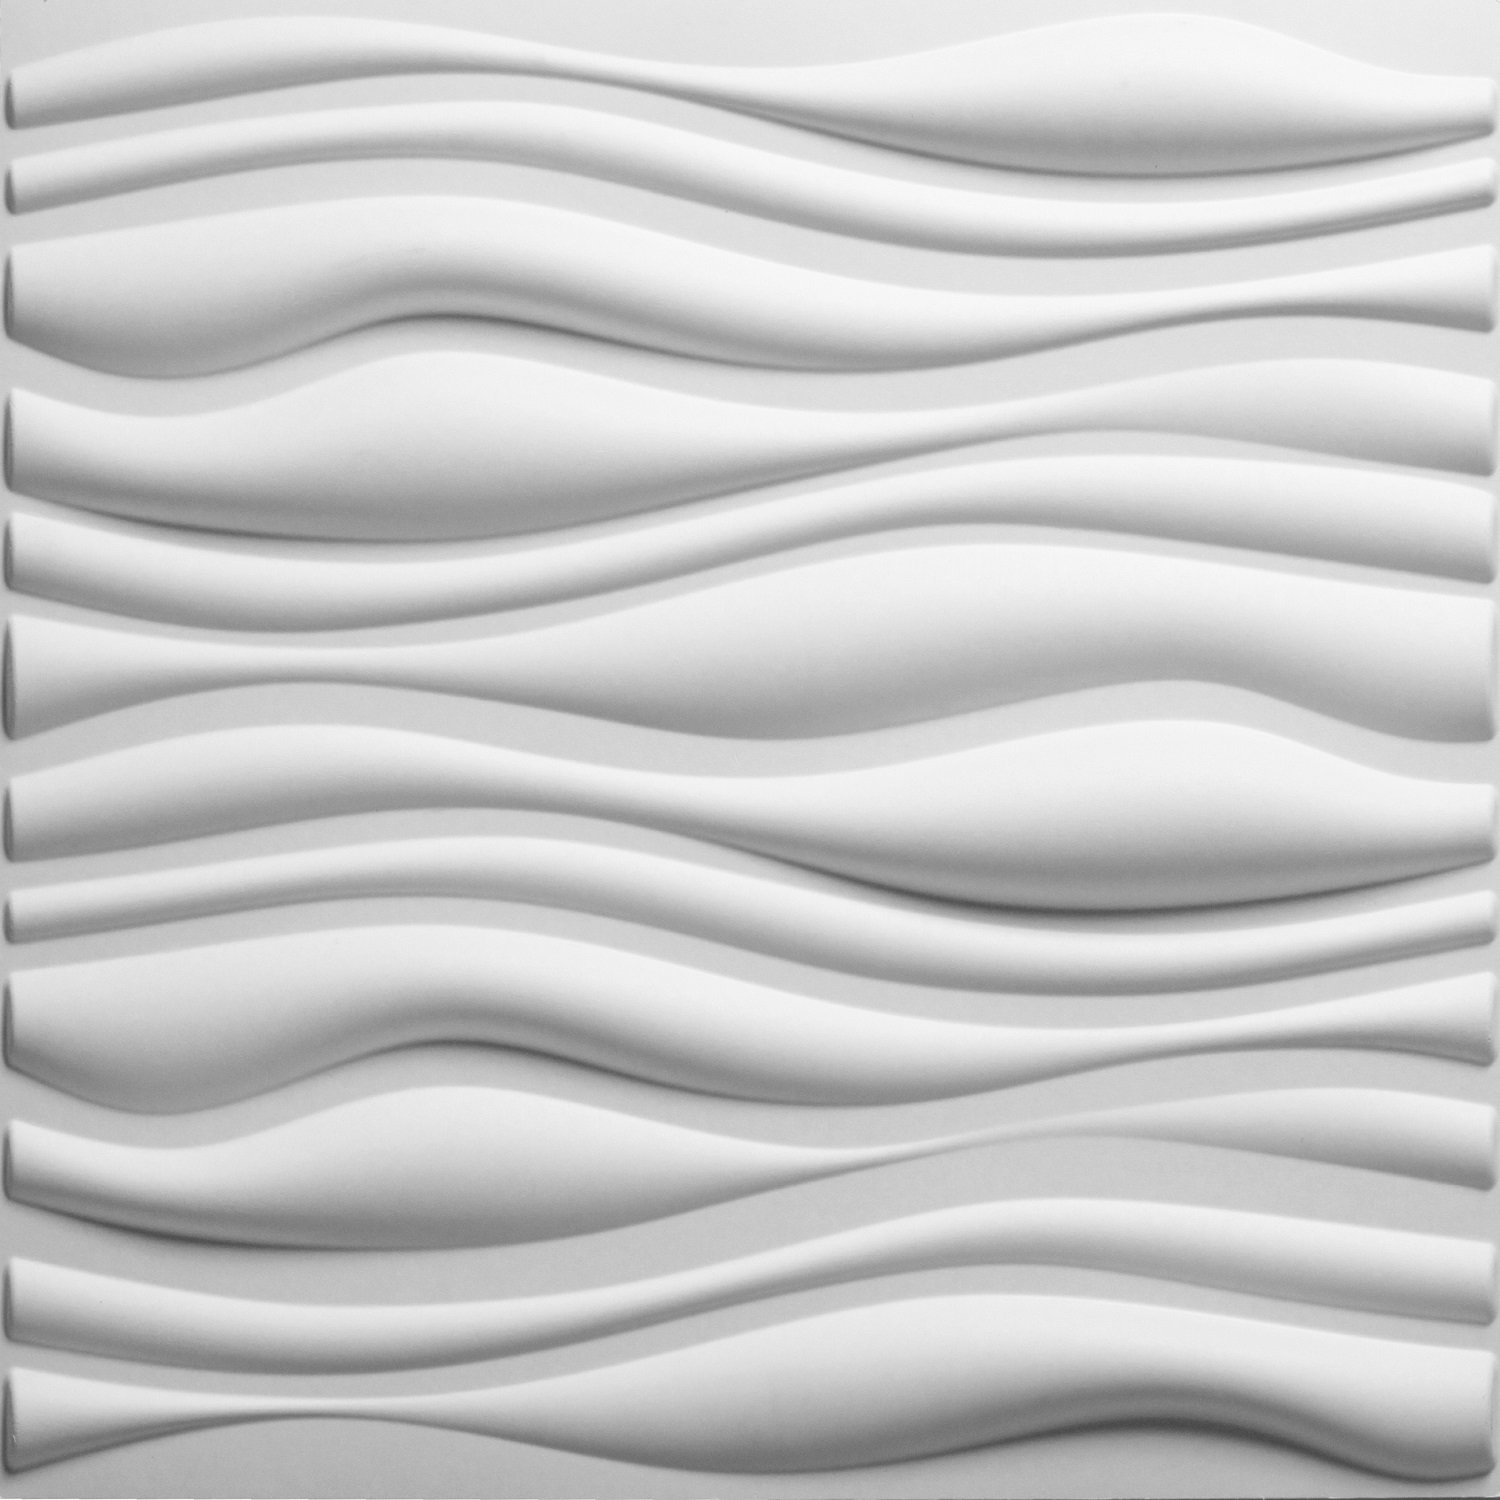 Upscale Designs 02-102 32 sq.ft. 3D Glue-On Wall/Ceiling/Wainscoting Panels, Branches